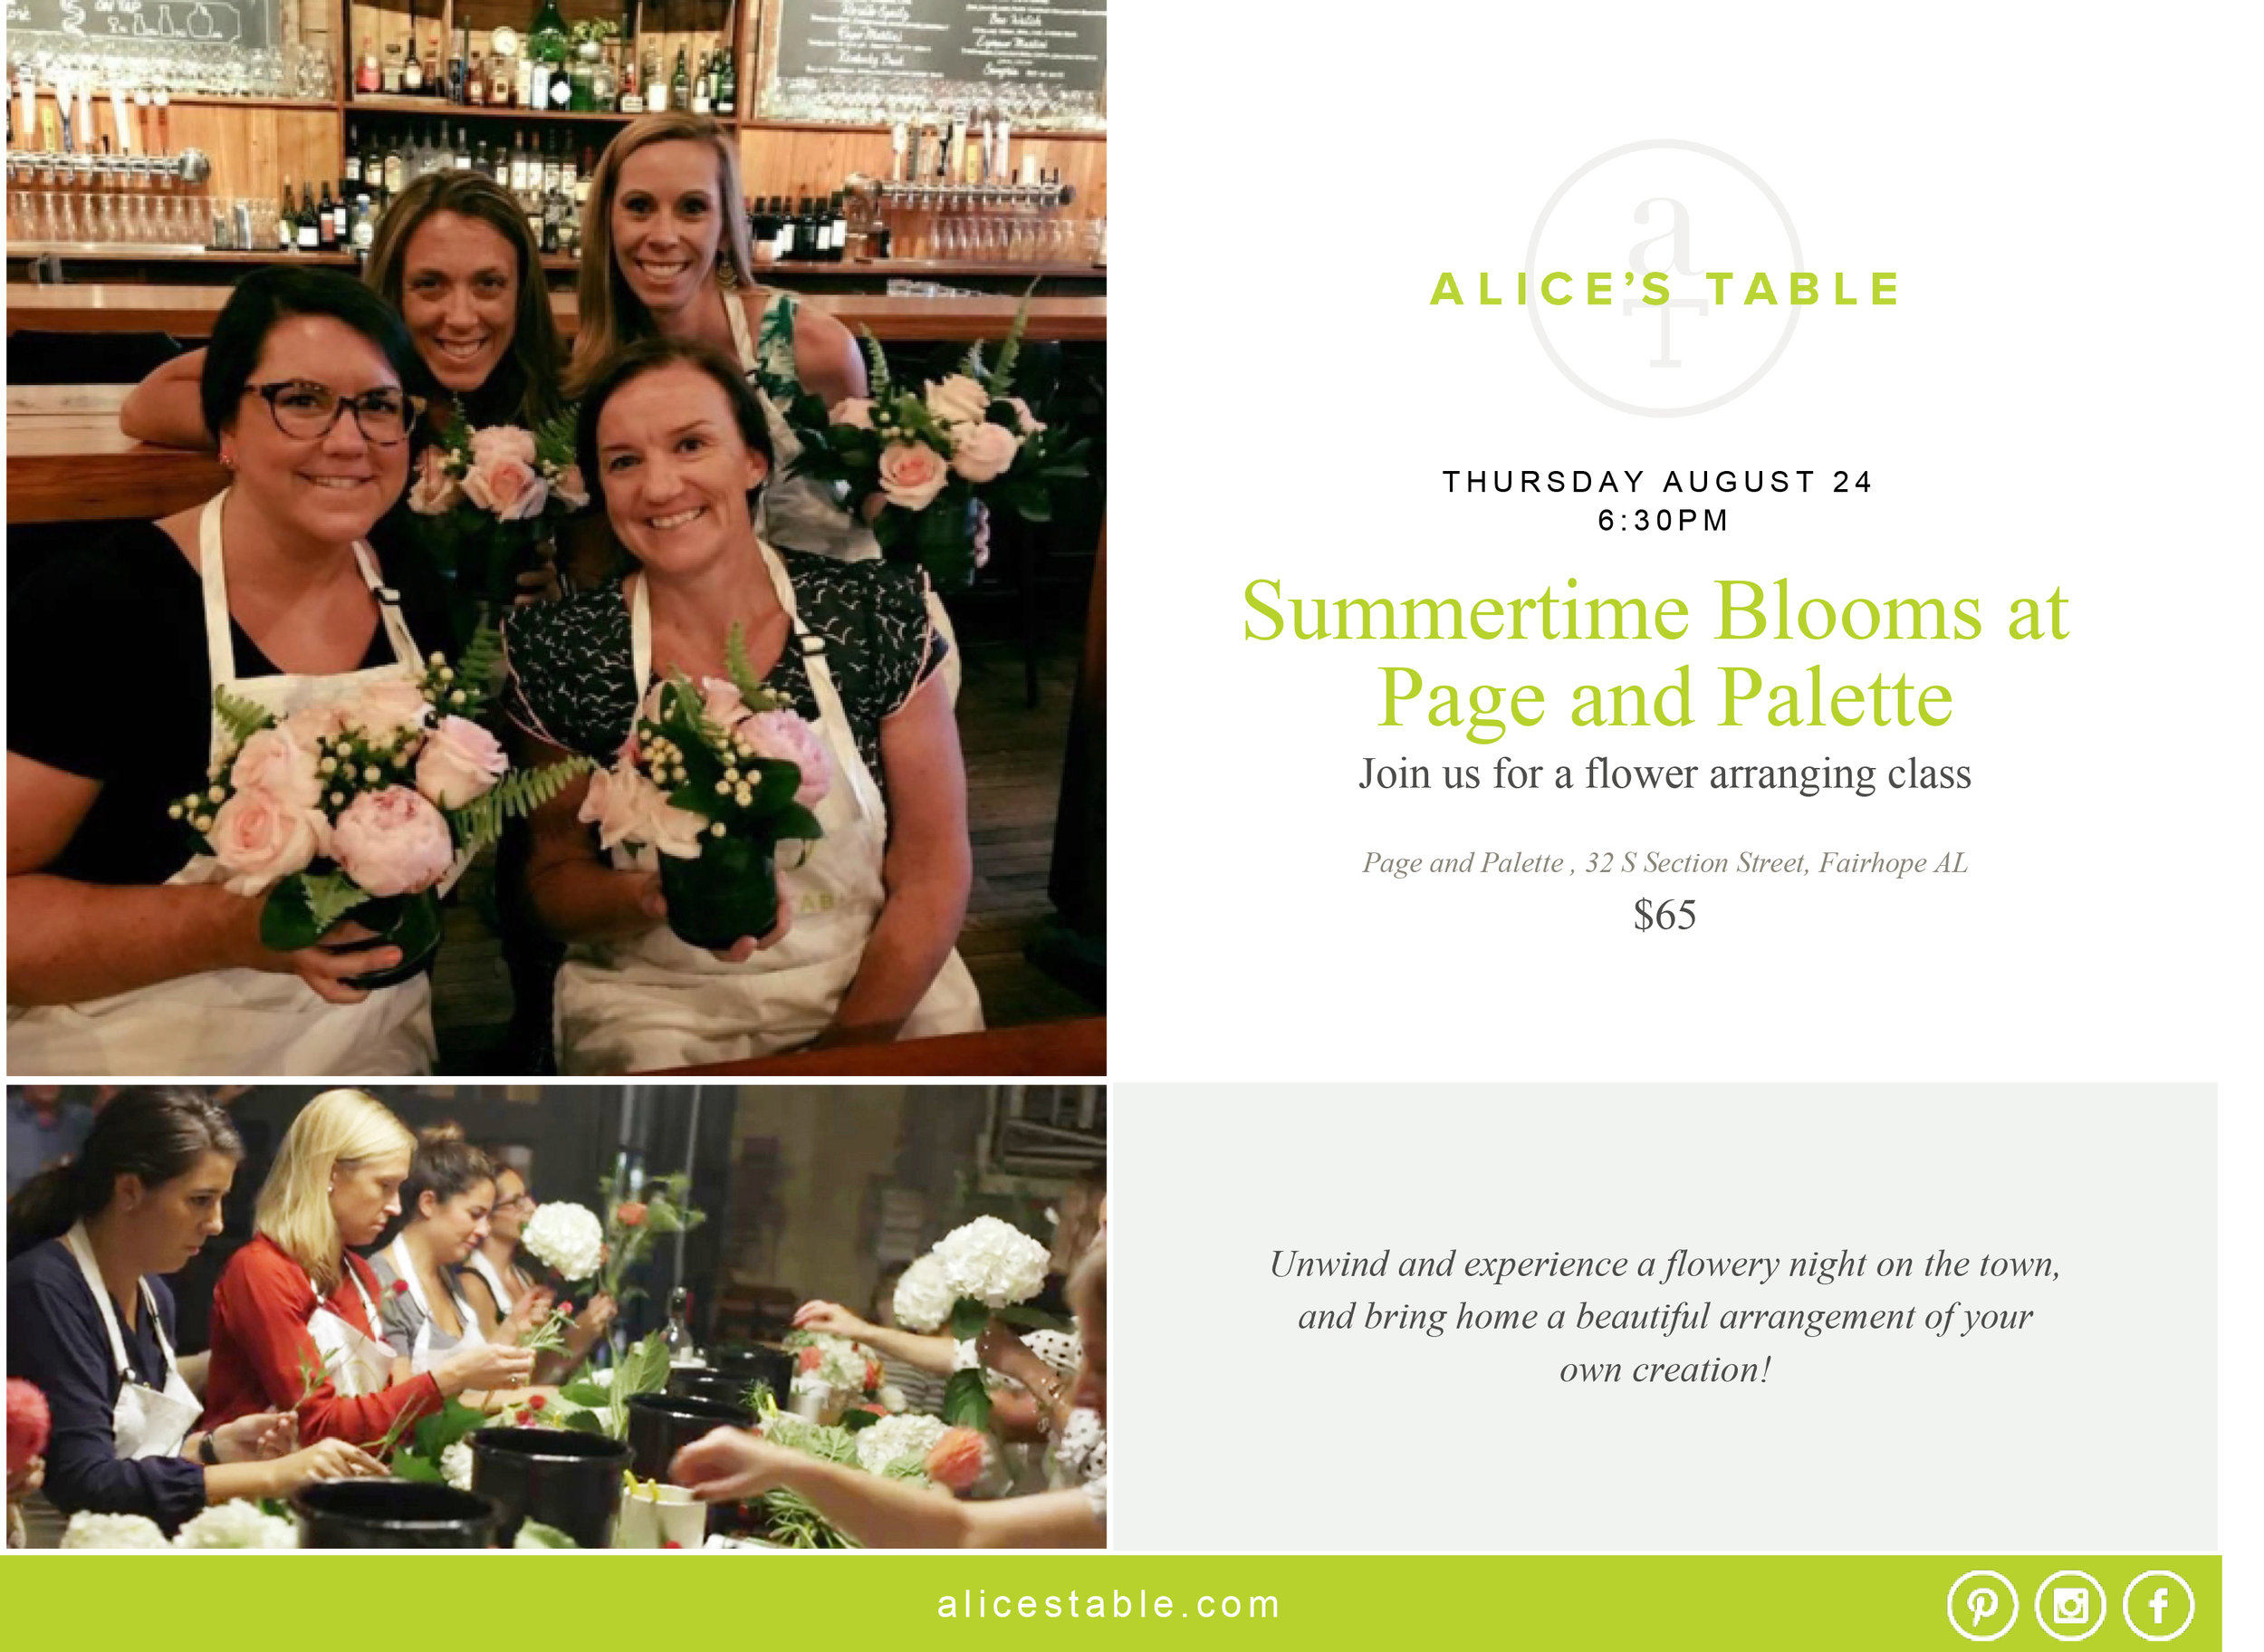 summertime-blooms-at-page-and-palette.jpg